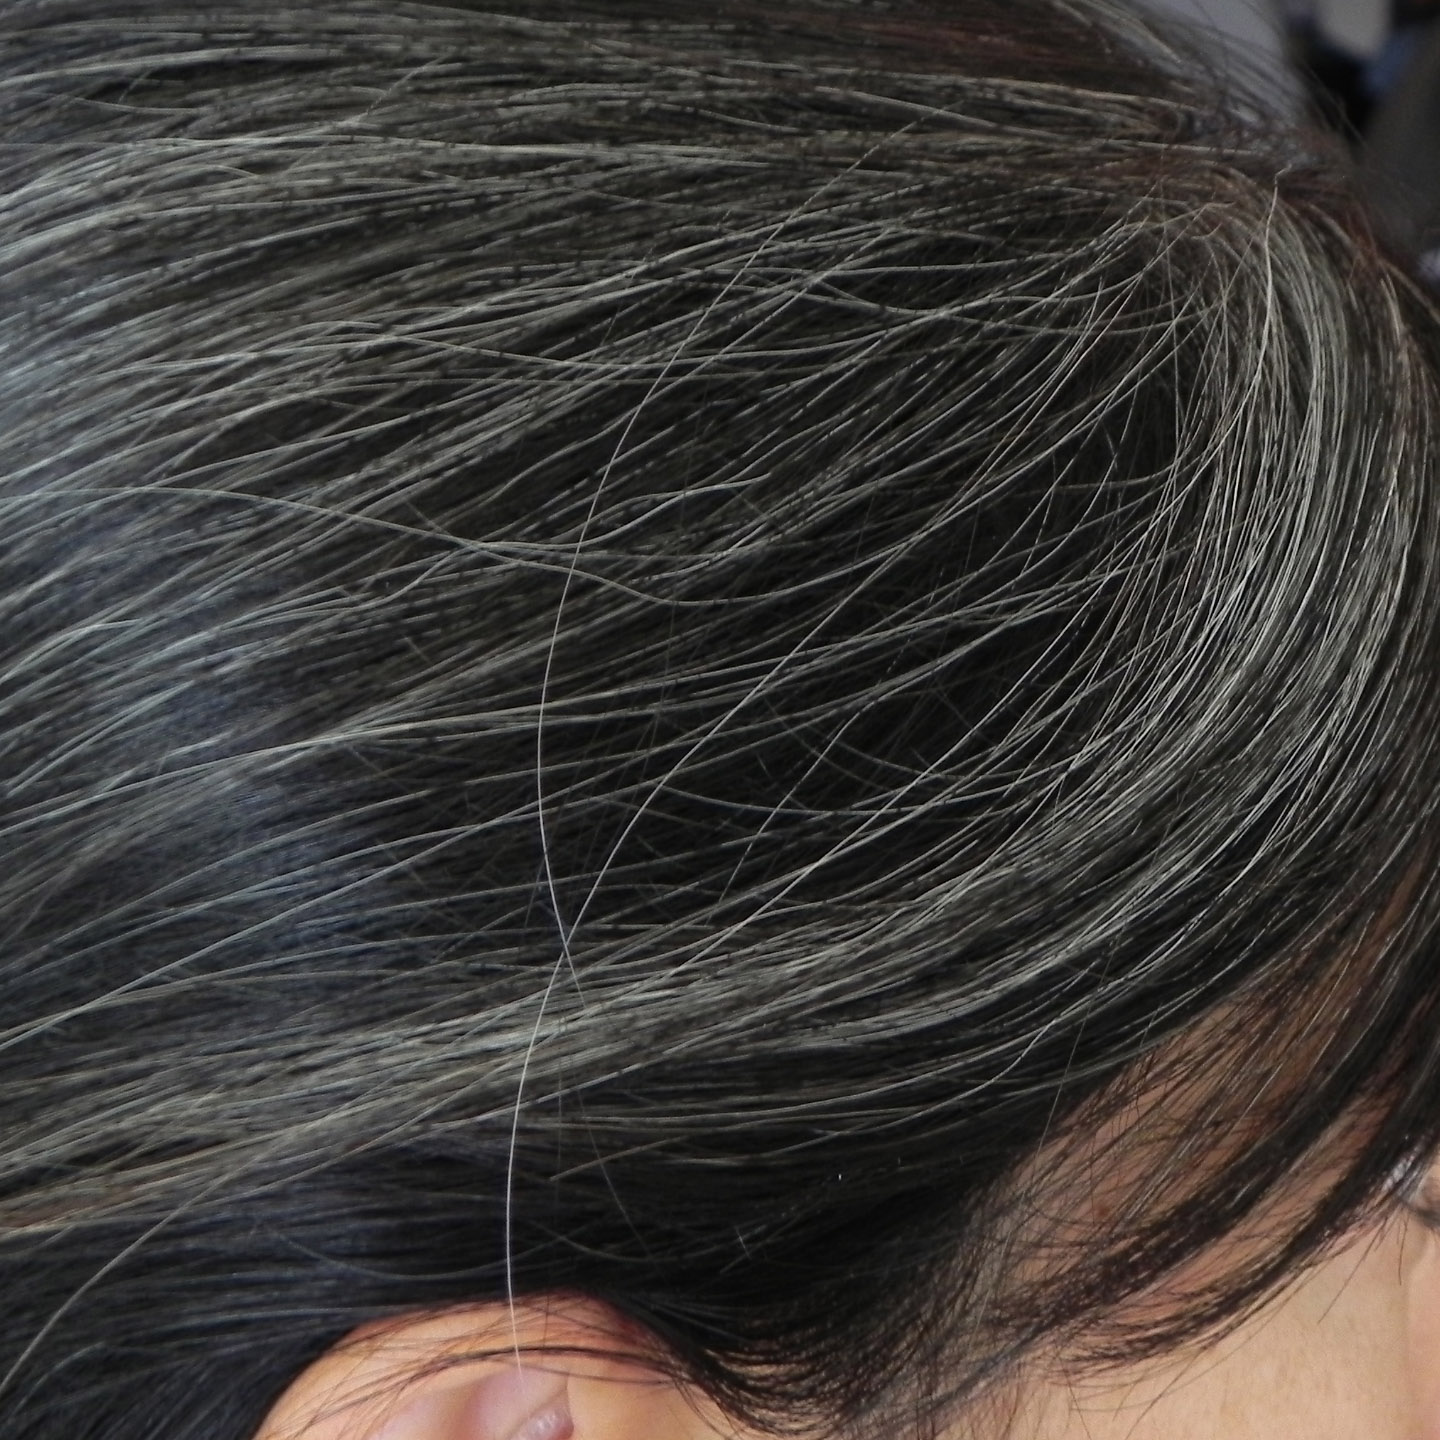 Balm tinted Concept - the ability to change the color of hair and do no harm to them